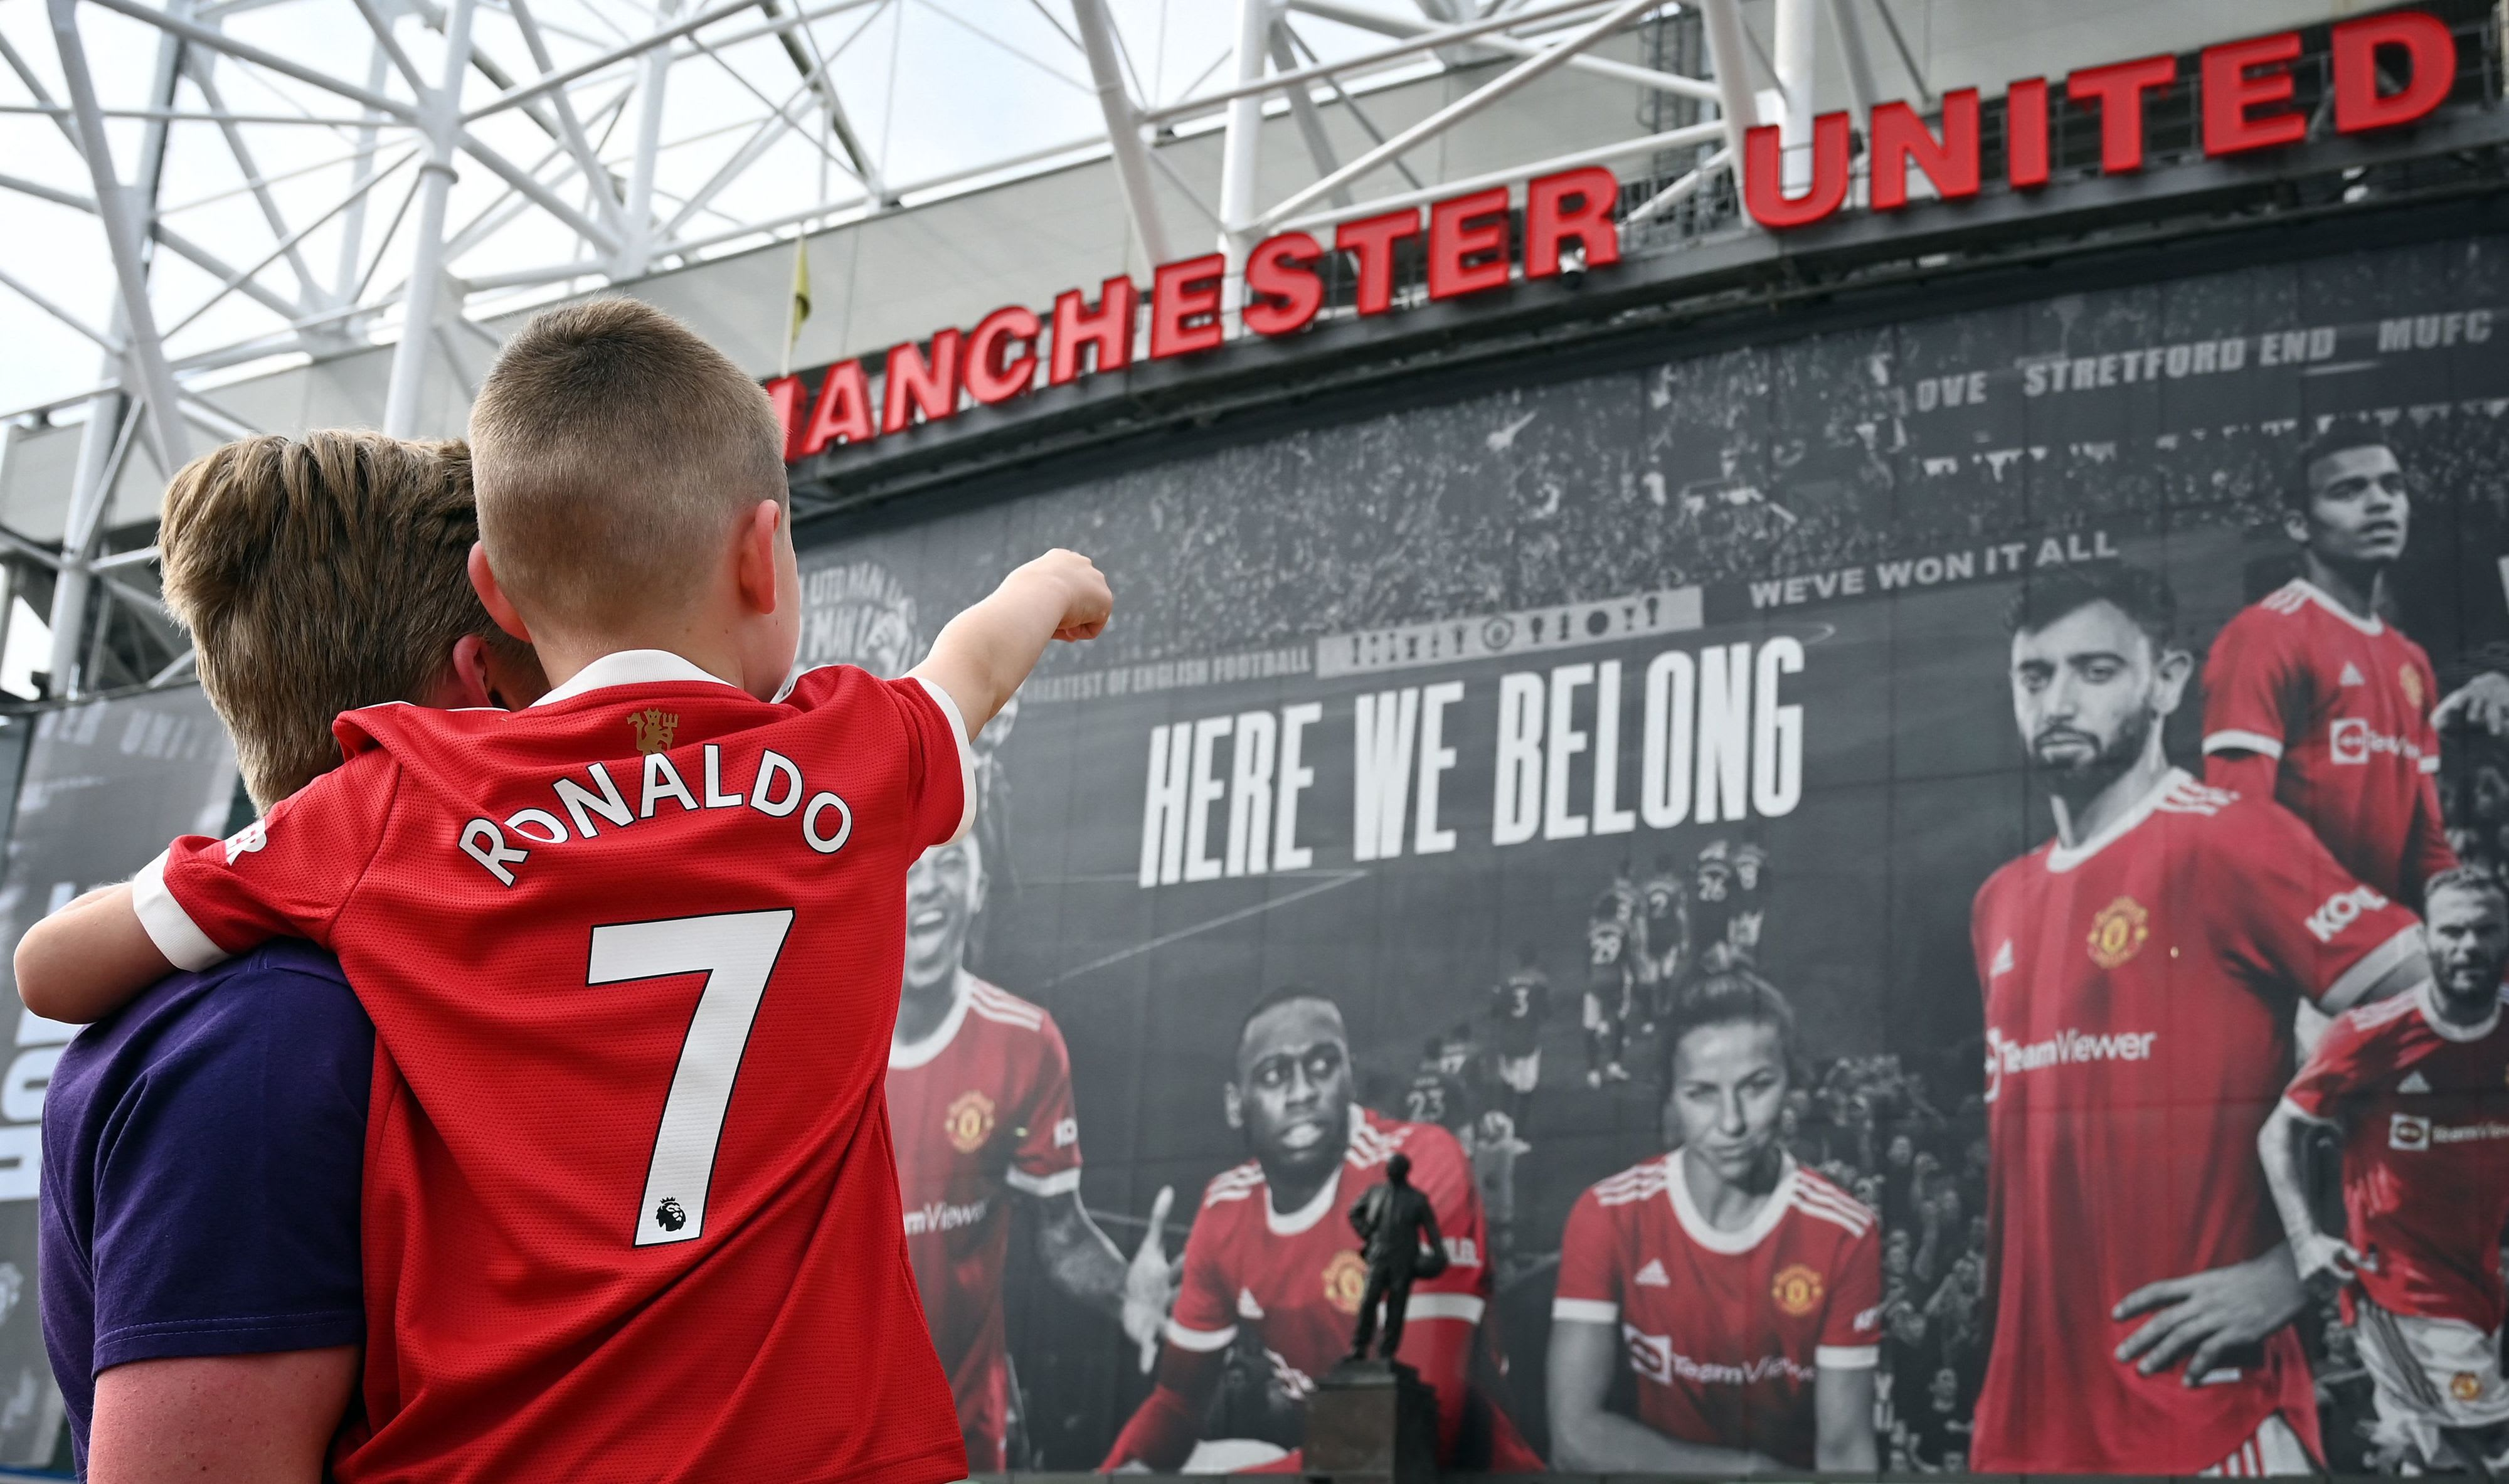 Manchester United fans are excited about the return of Cristiano Ronaldo